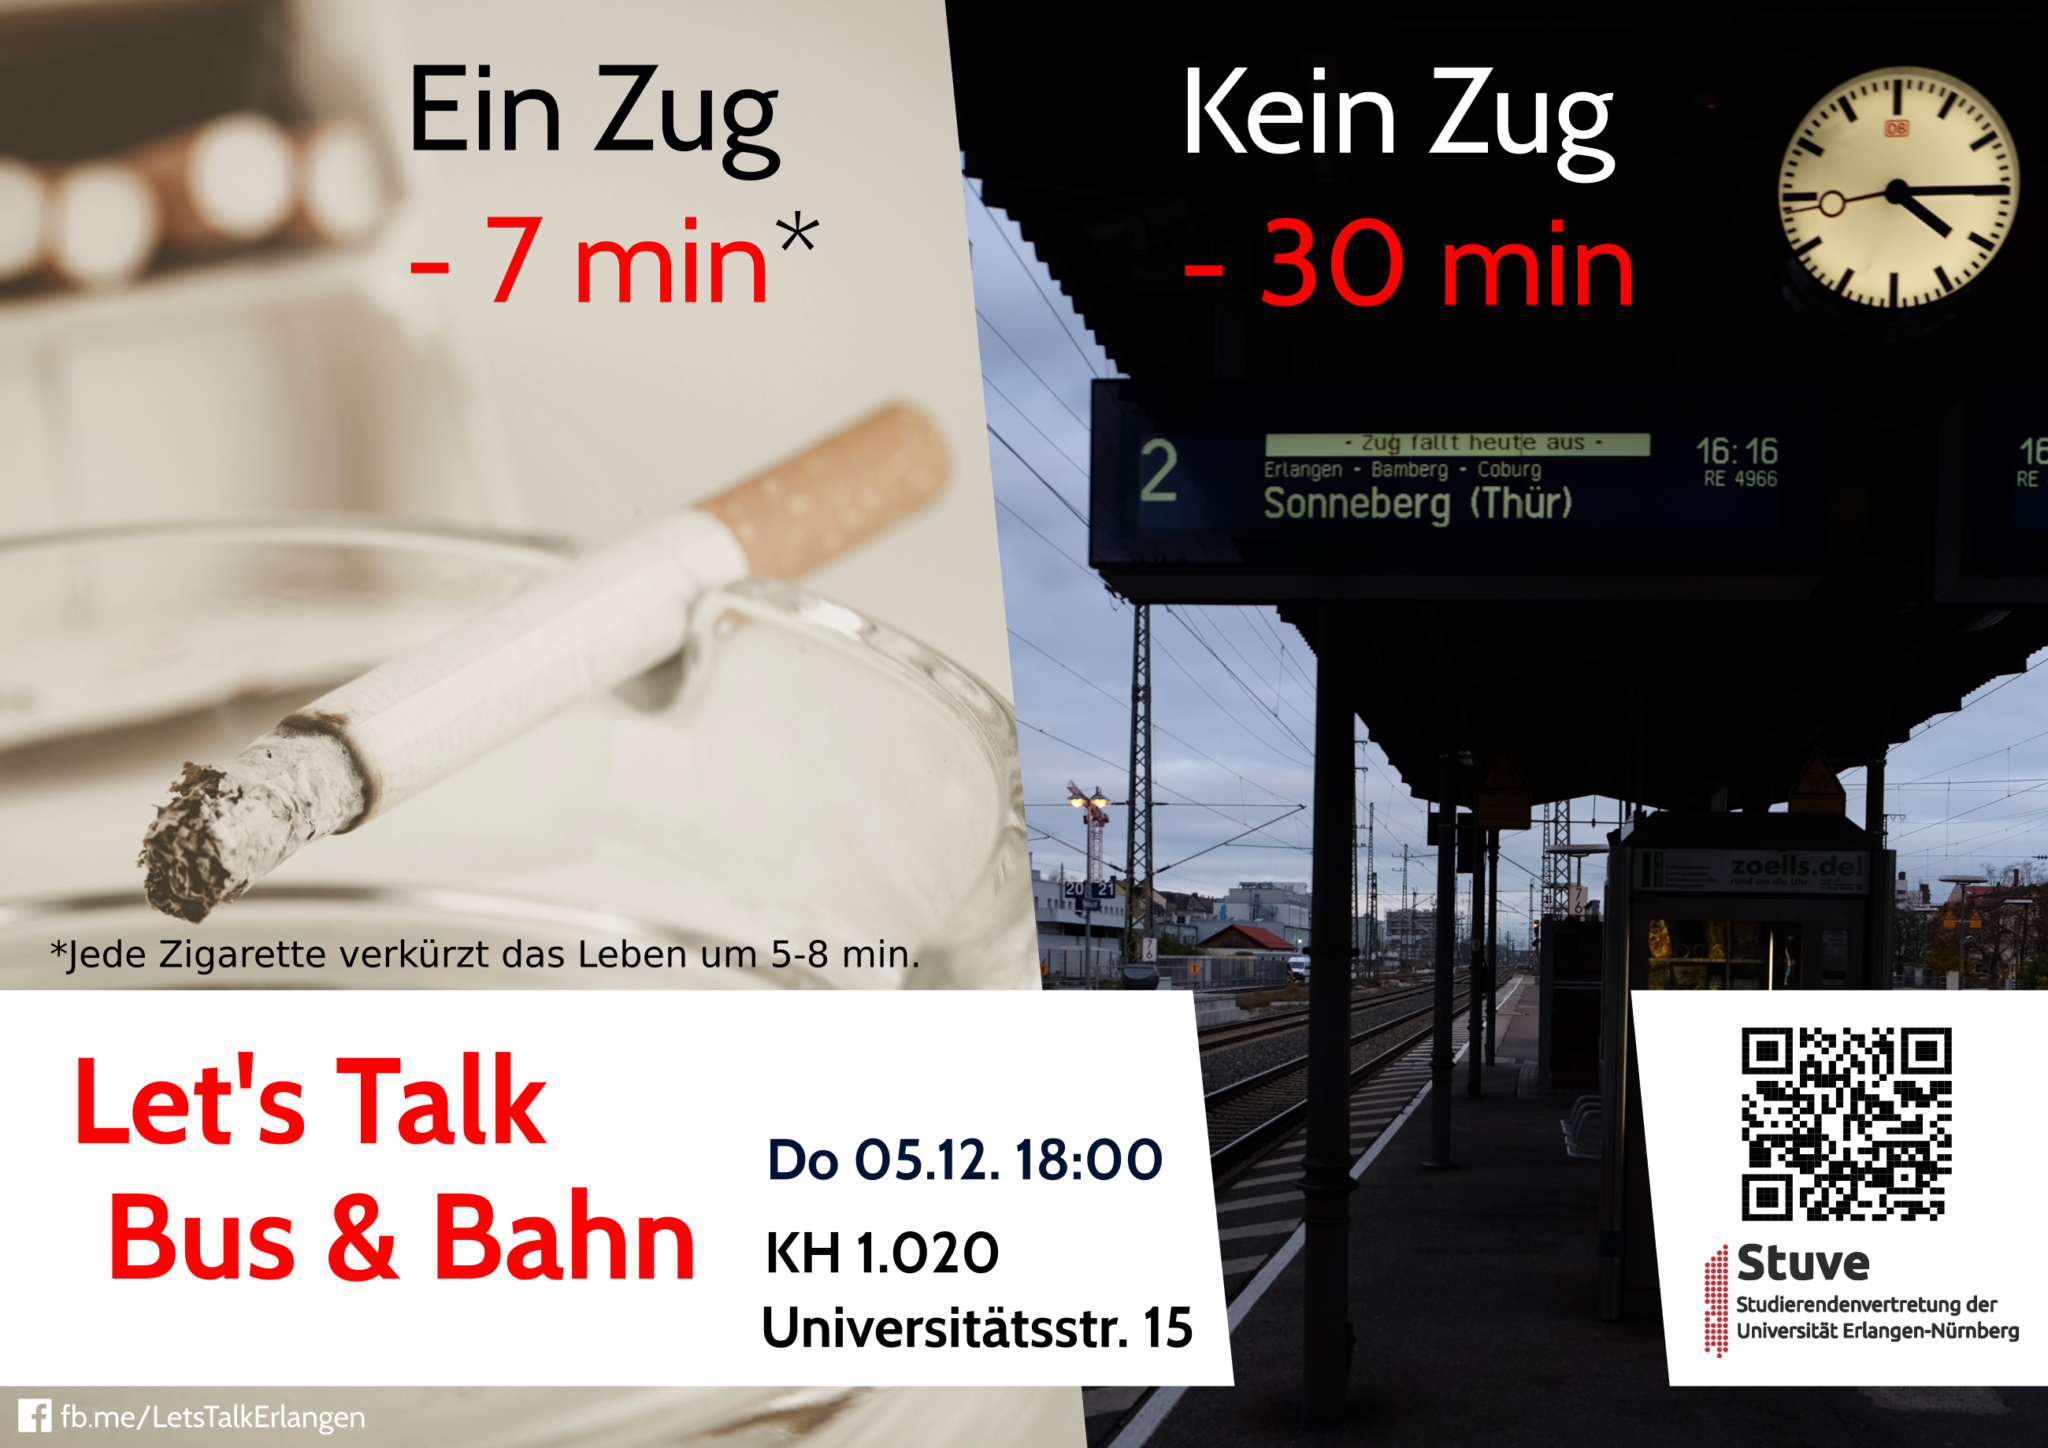 Let's Talk Bus & Bahn. Do 05.12. 18:00. KH 1.020 Universitätsstr 15